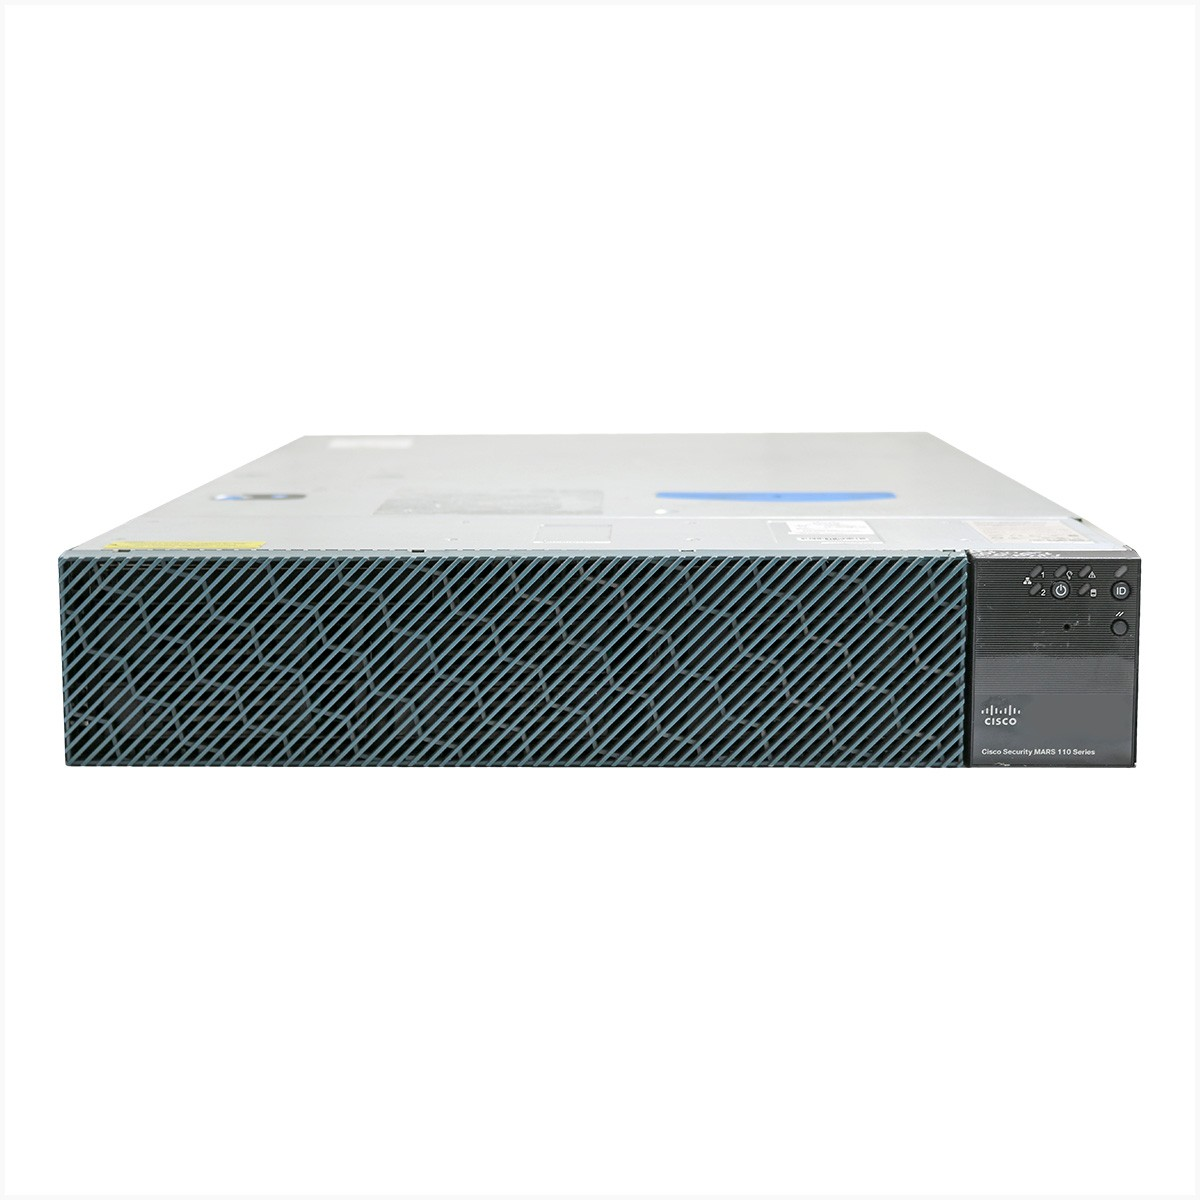 Firewall cisco security mars 110 - usado